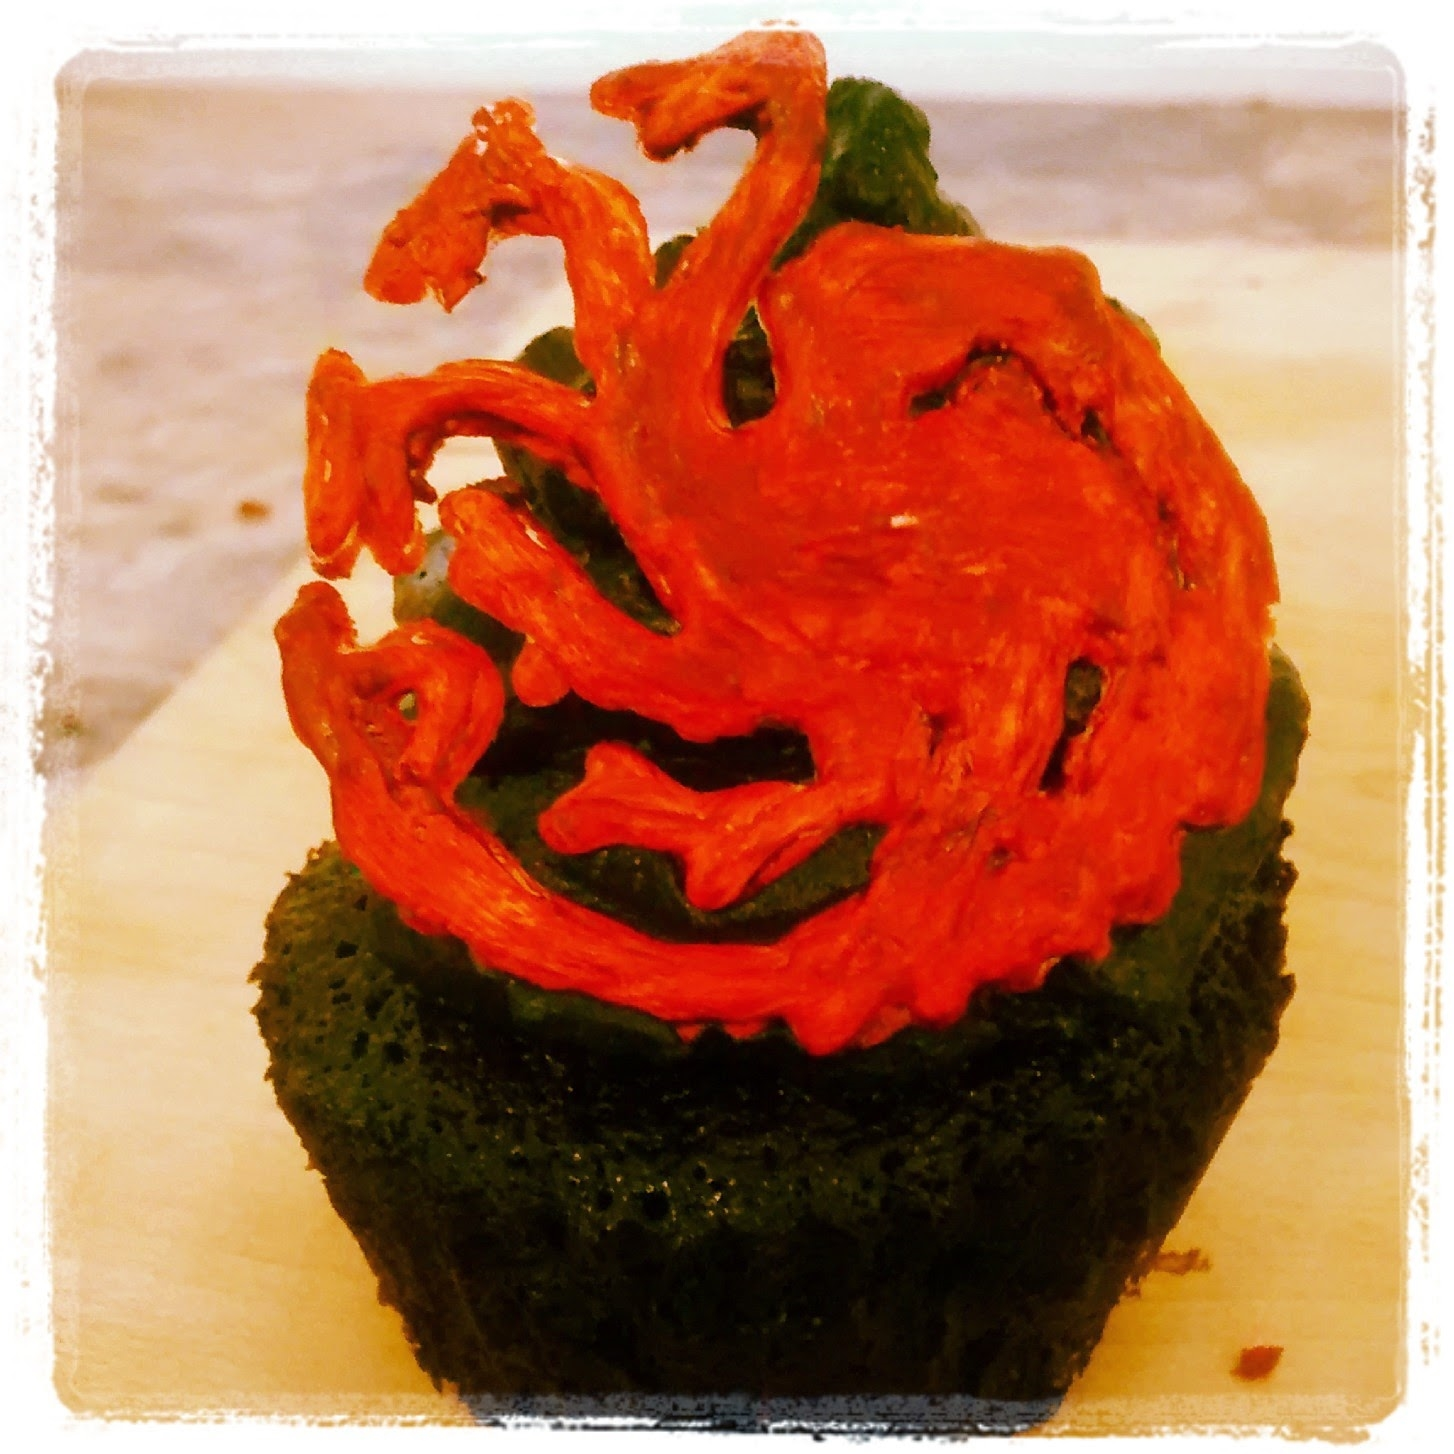 Game of Thrones cupcake with hand-painted chocolate sigil